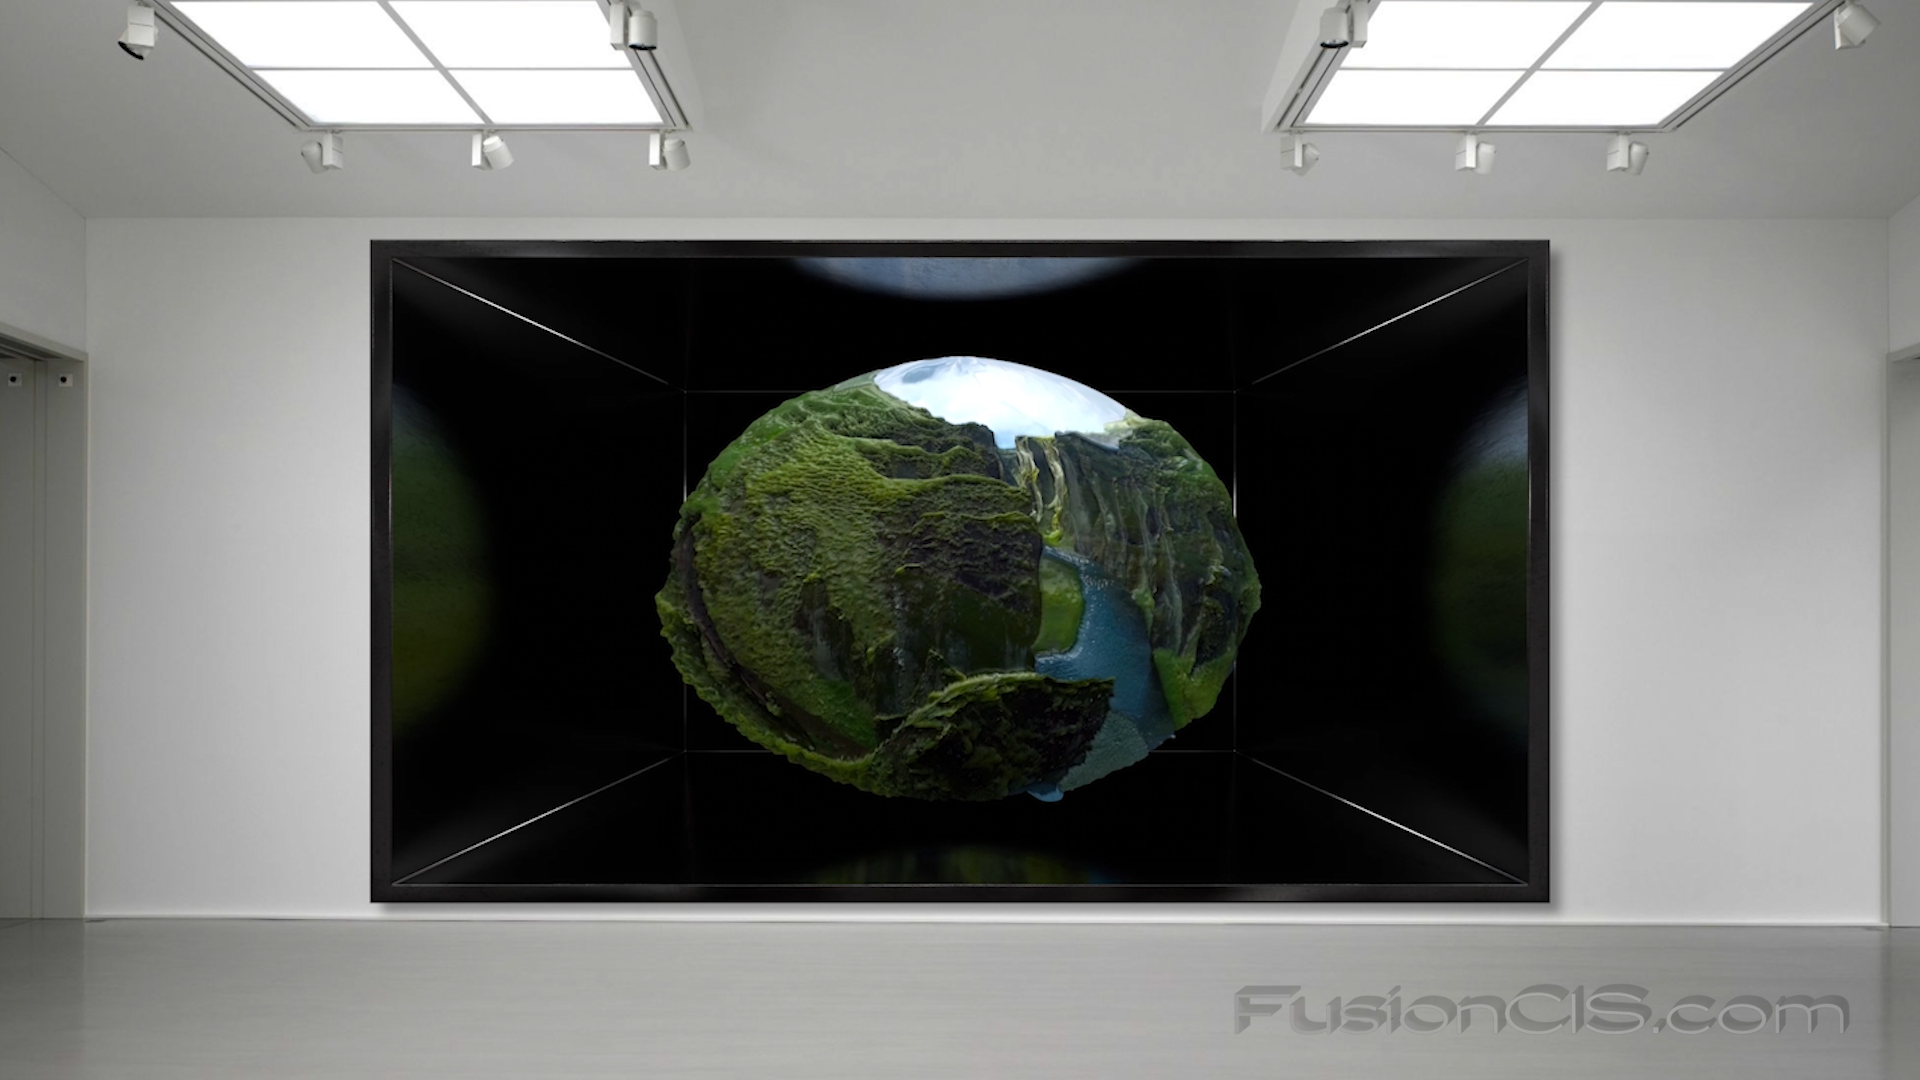 Fragile Finity – A Technological Innovation, Sculpting with Film